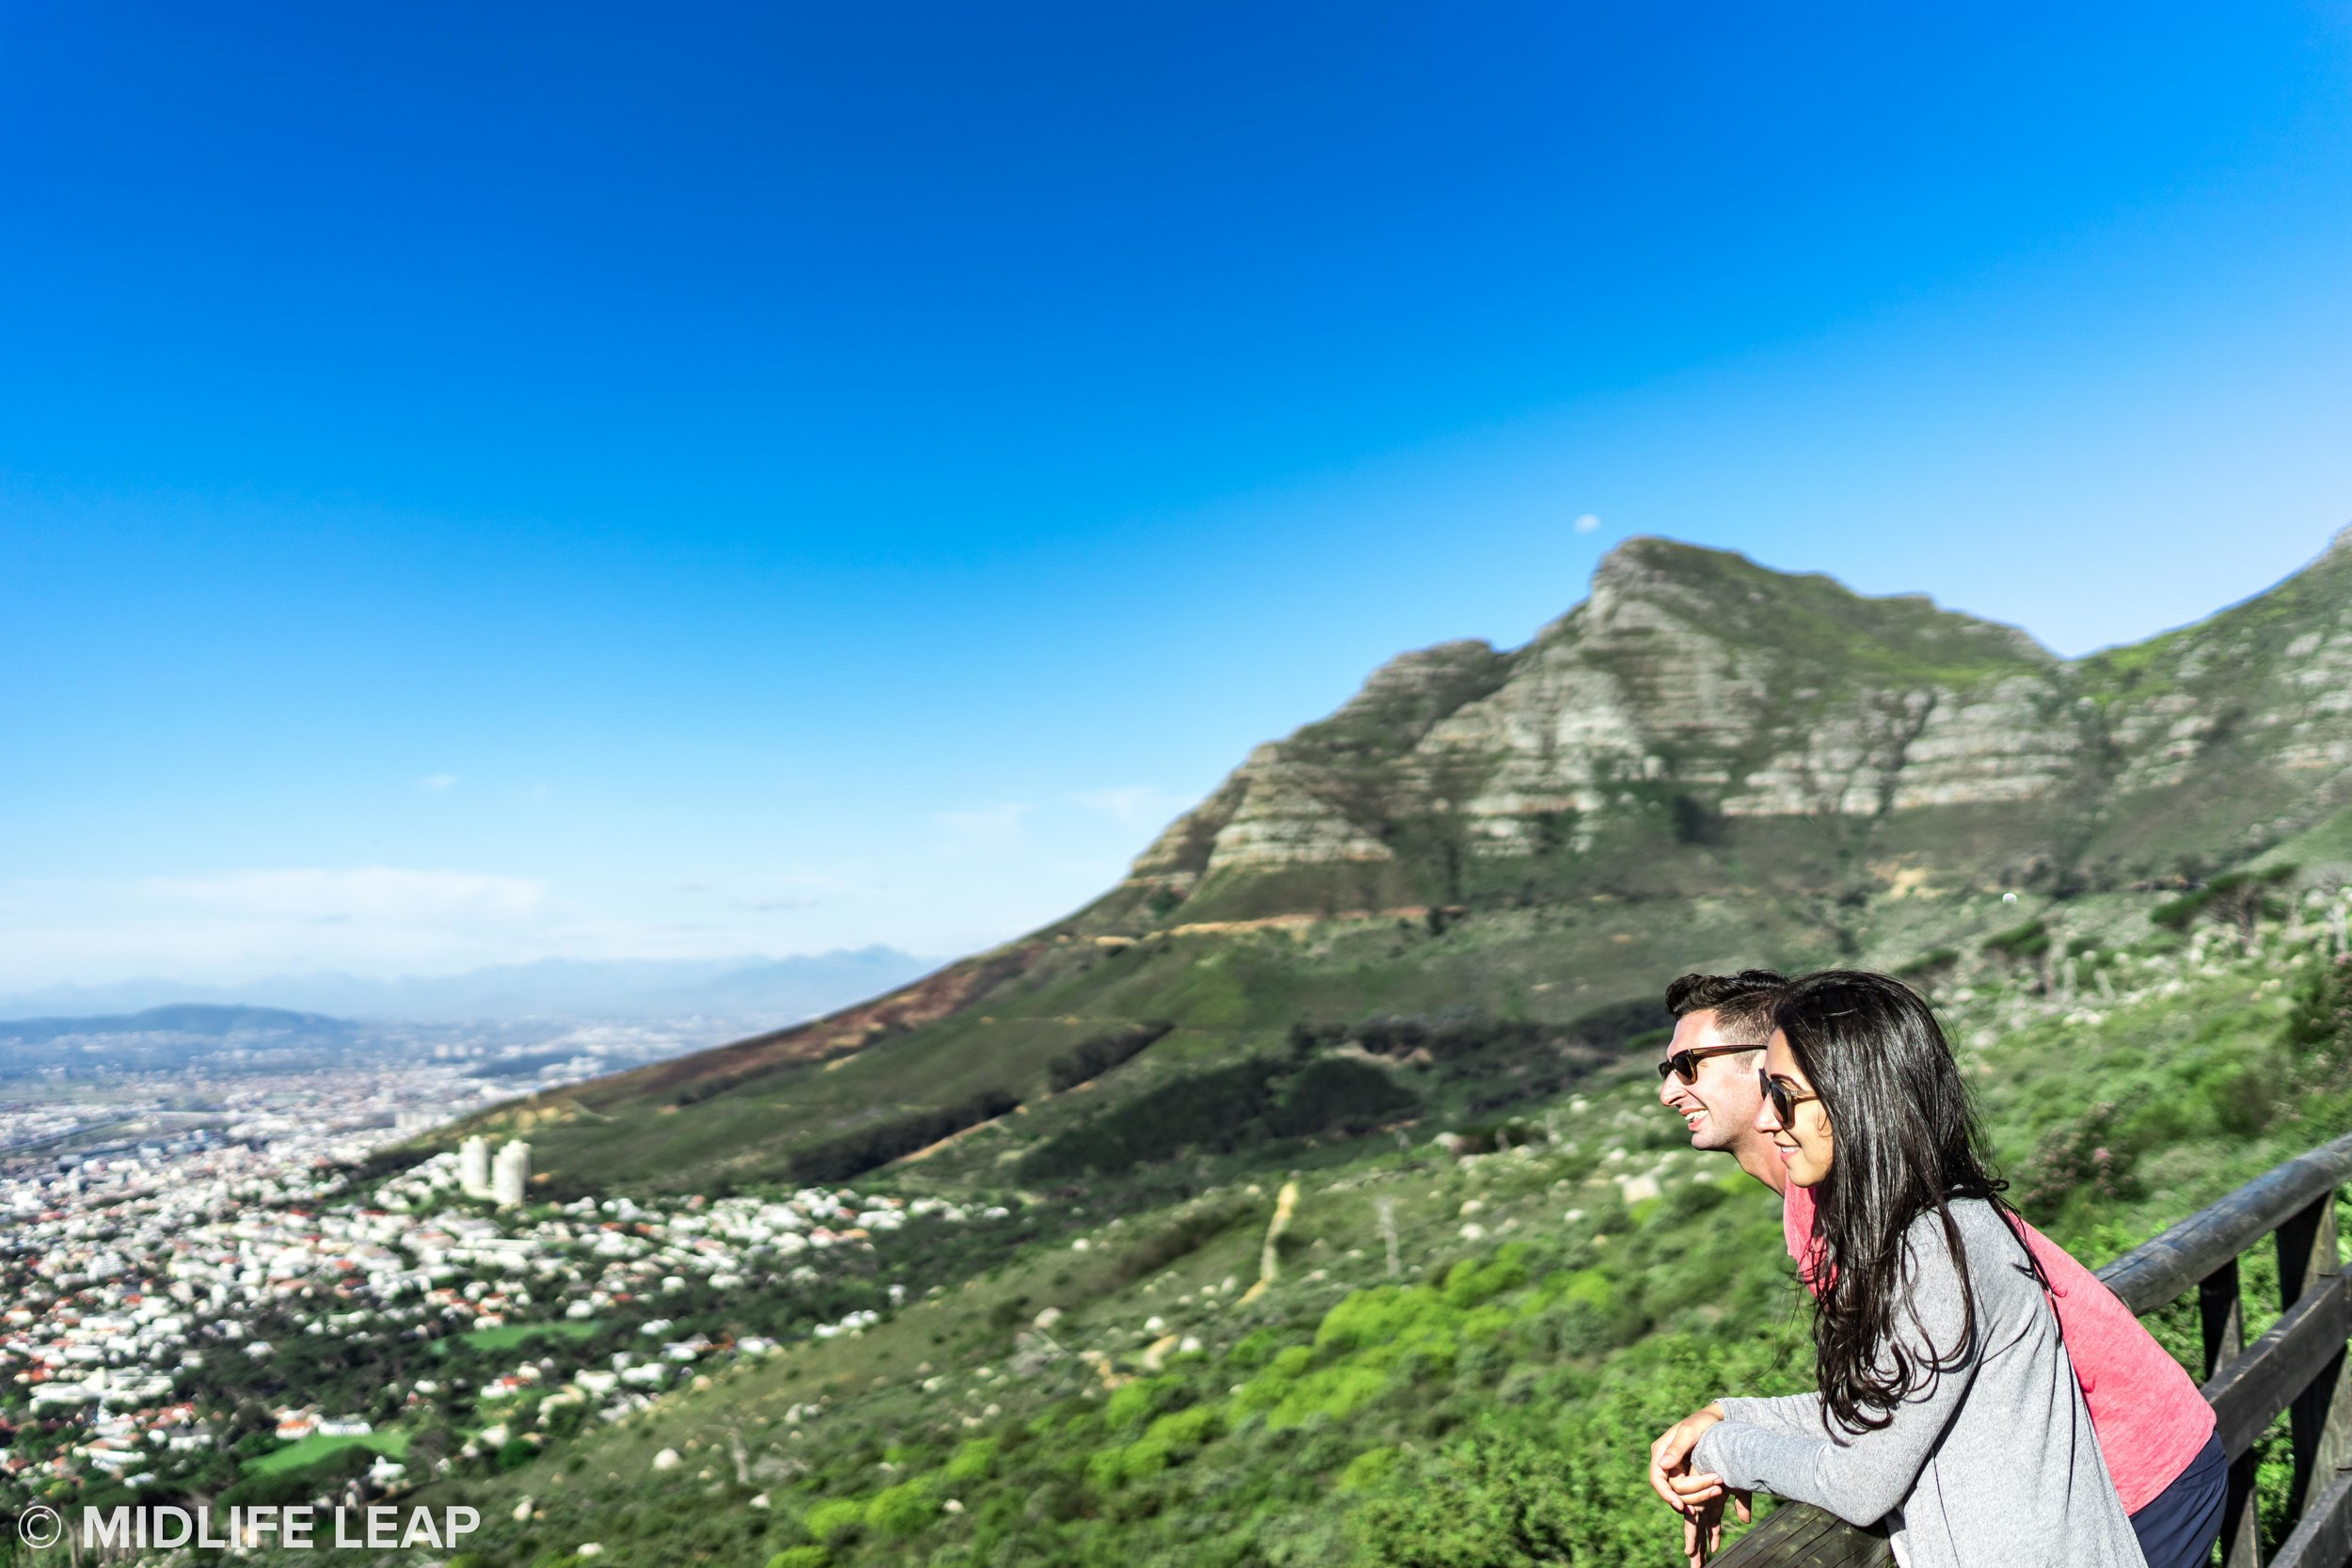 A viewpoint from the base of the Table Mountain gondola